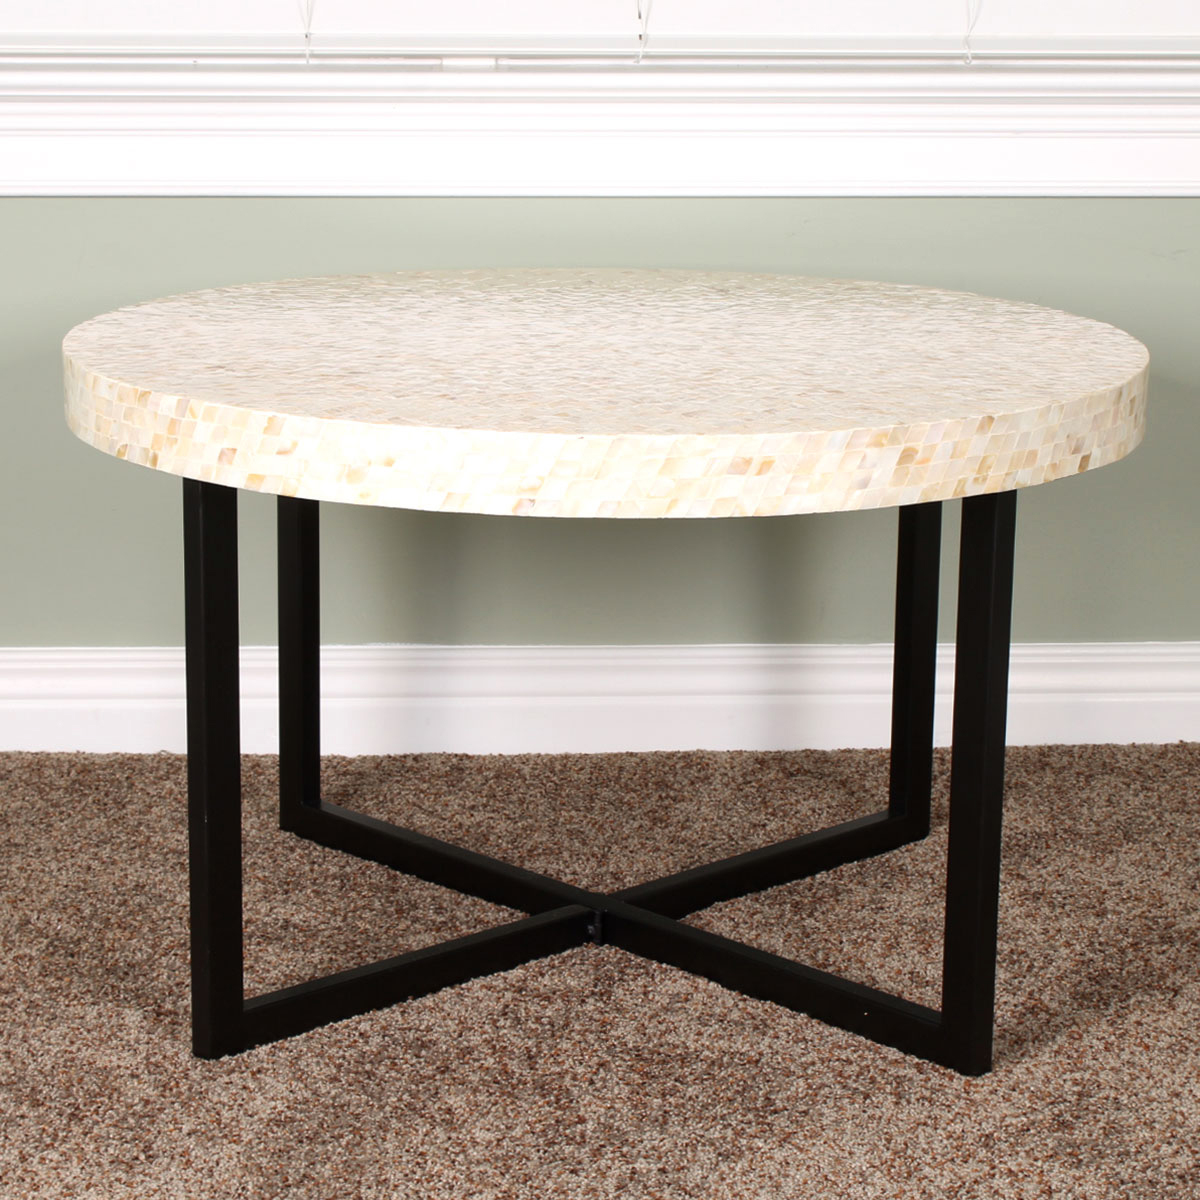 pier 1 coffee table Pier 1 Imports Mother of Pearl Round Coffee Table : EBTH pier 1 coffee table